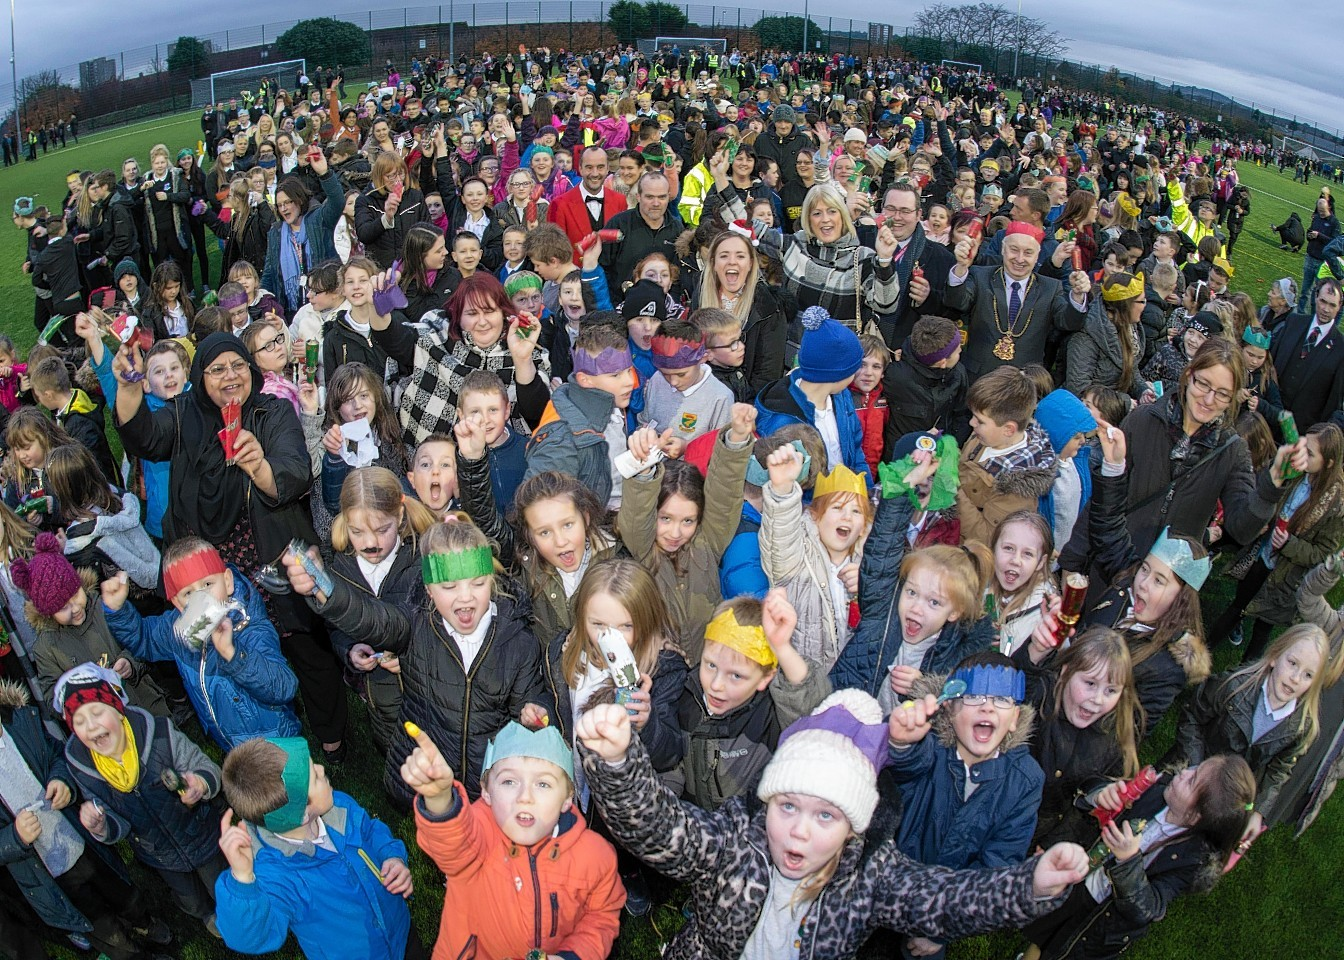 Northfield Academy pupils try to break world record for longest chain of Christmas crackers pulled at the same time